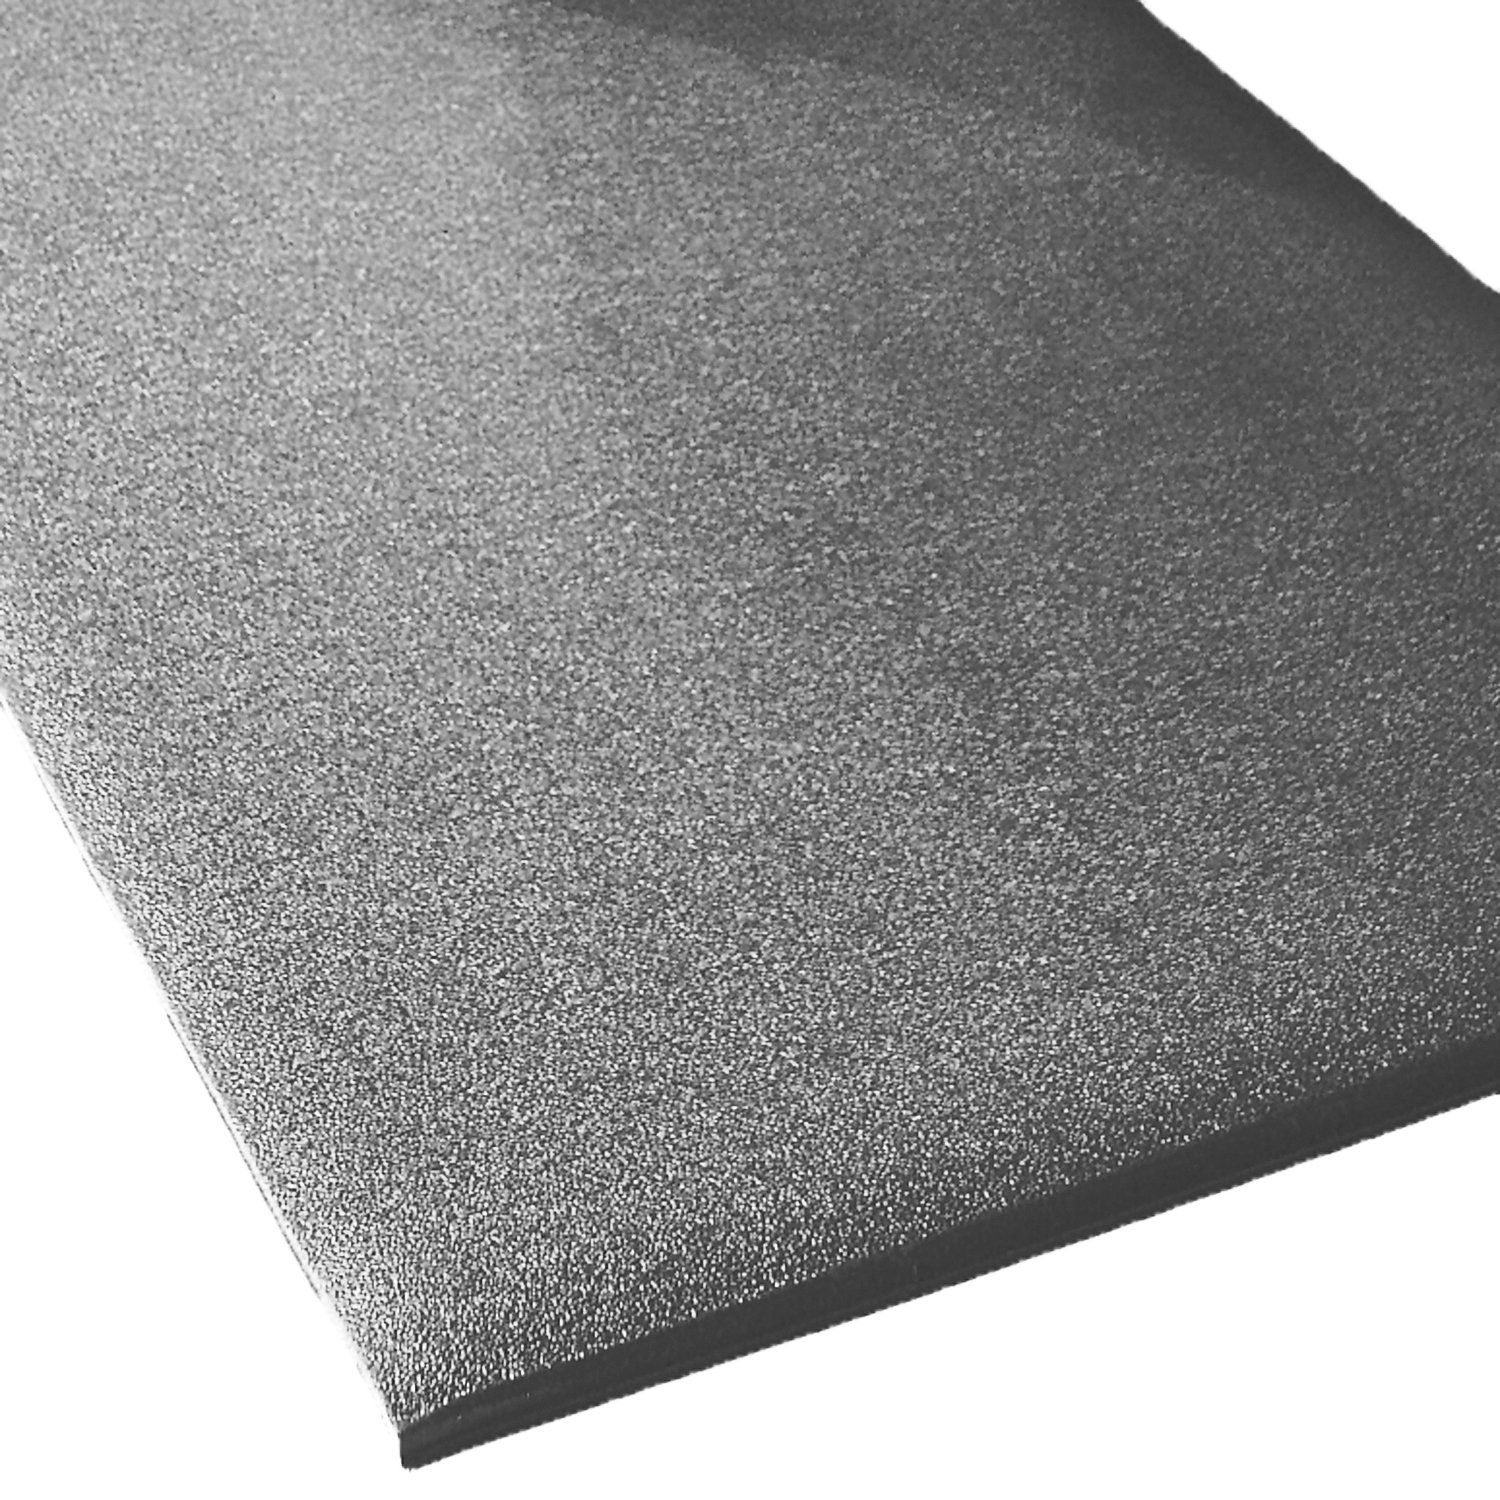 Rhino Mats CST-220-58G Comfort Step Textured Vinyl Foam Anti-Fatigue Mat, 2' Width x 20' Length x 5/8'' Thickness, Gray by Rhino Mats